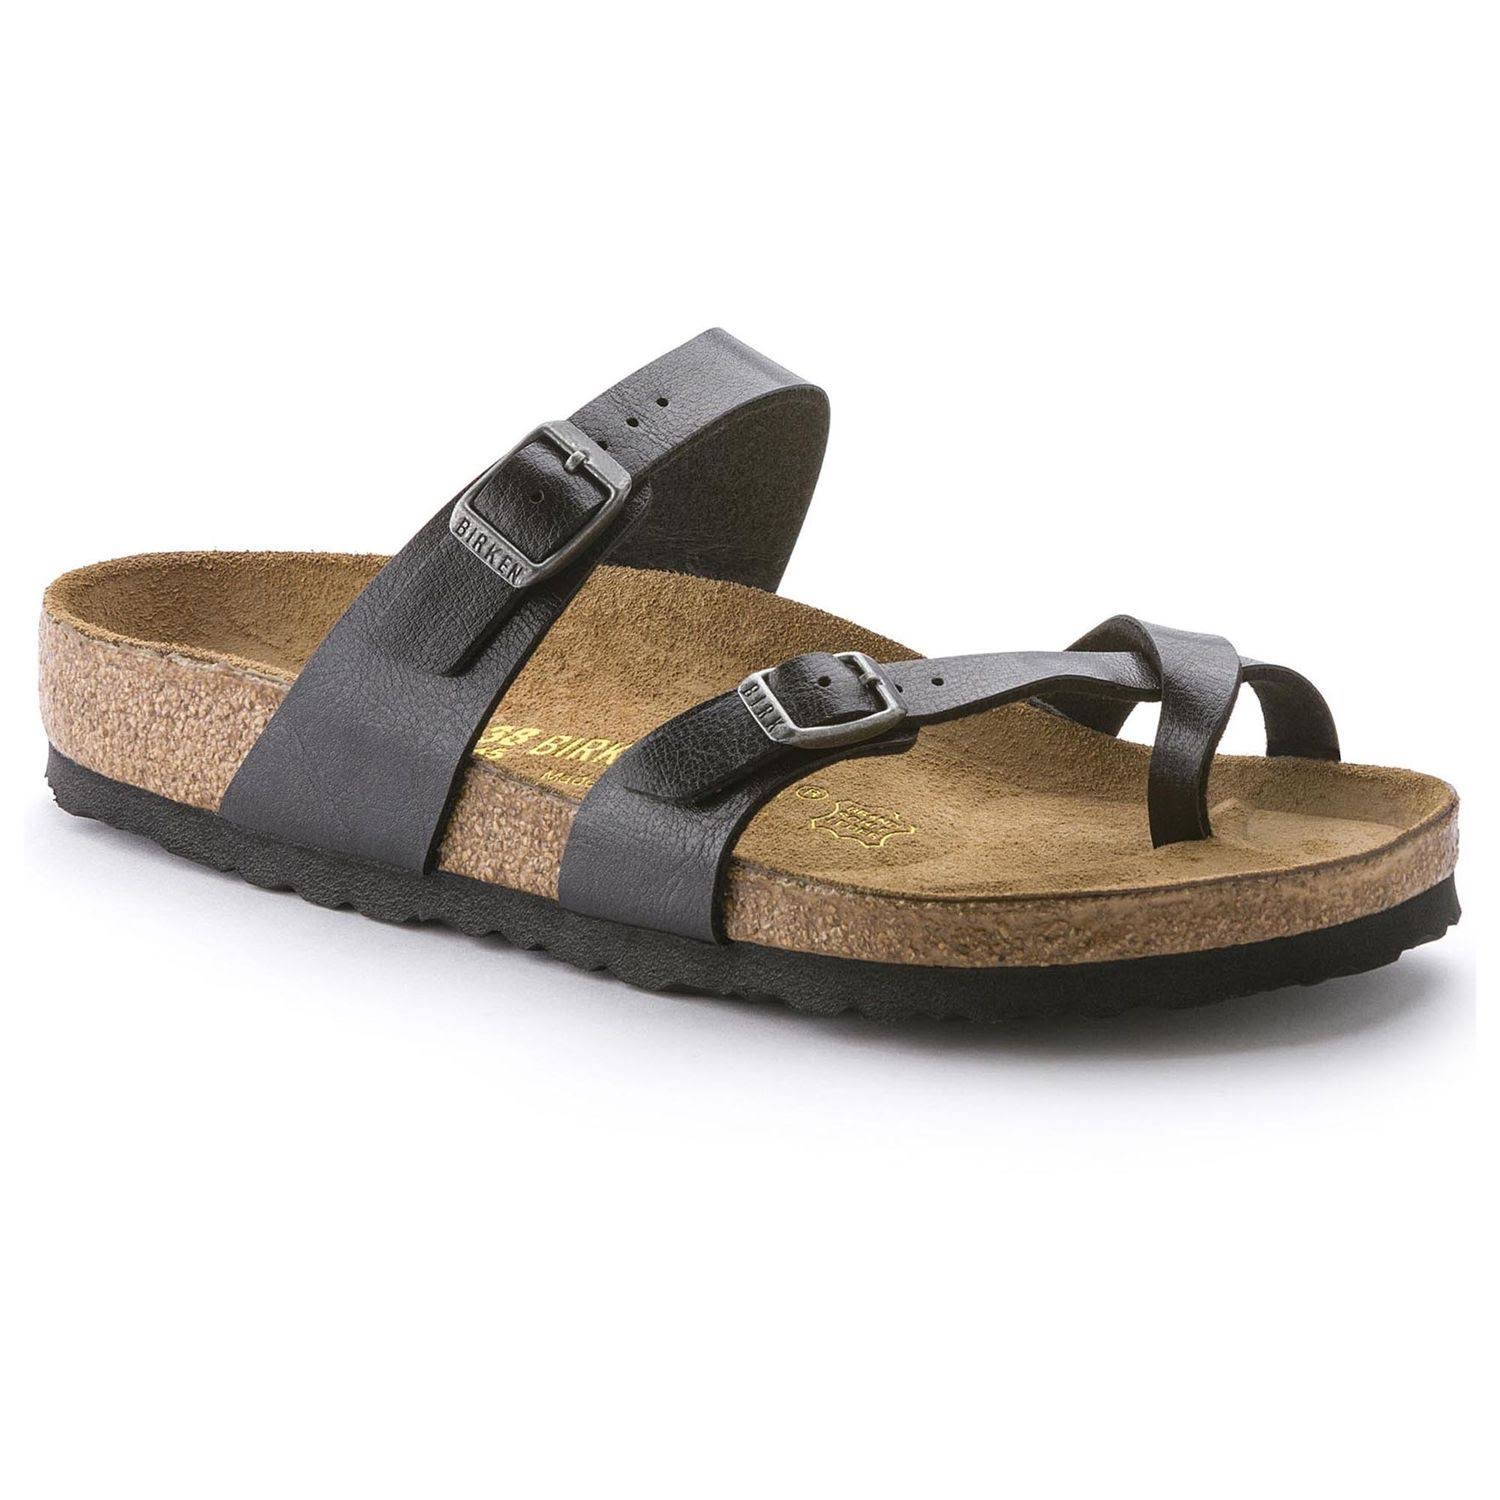 Birkenstock Women's Mayari Leather Slides Sandals - Black, 9.5 US